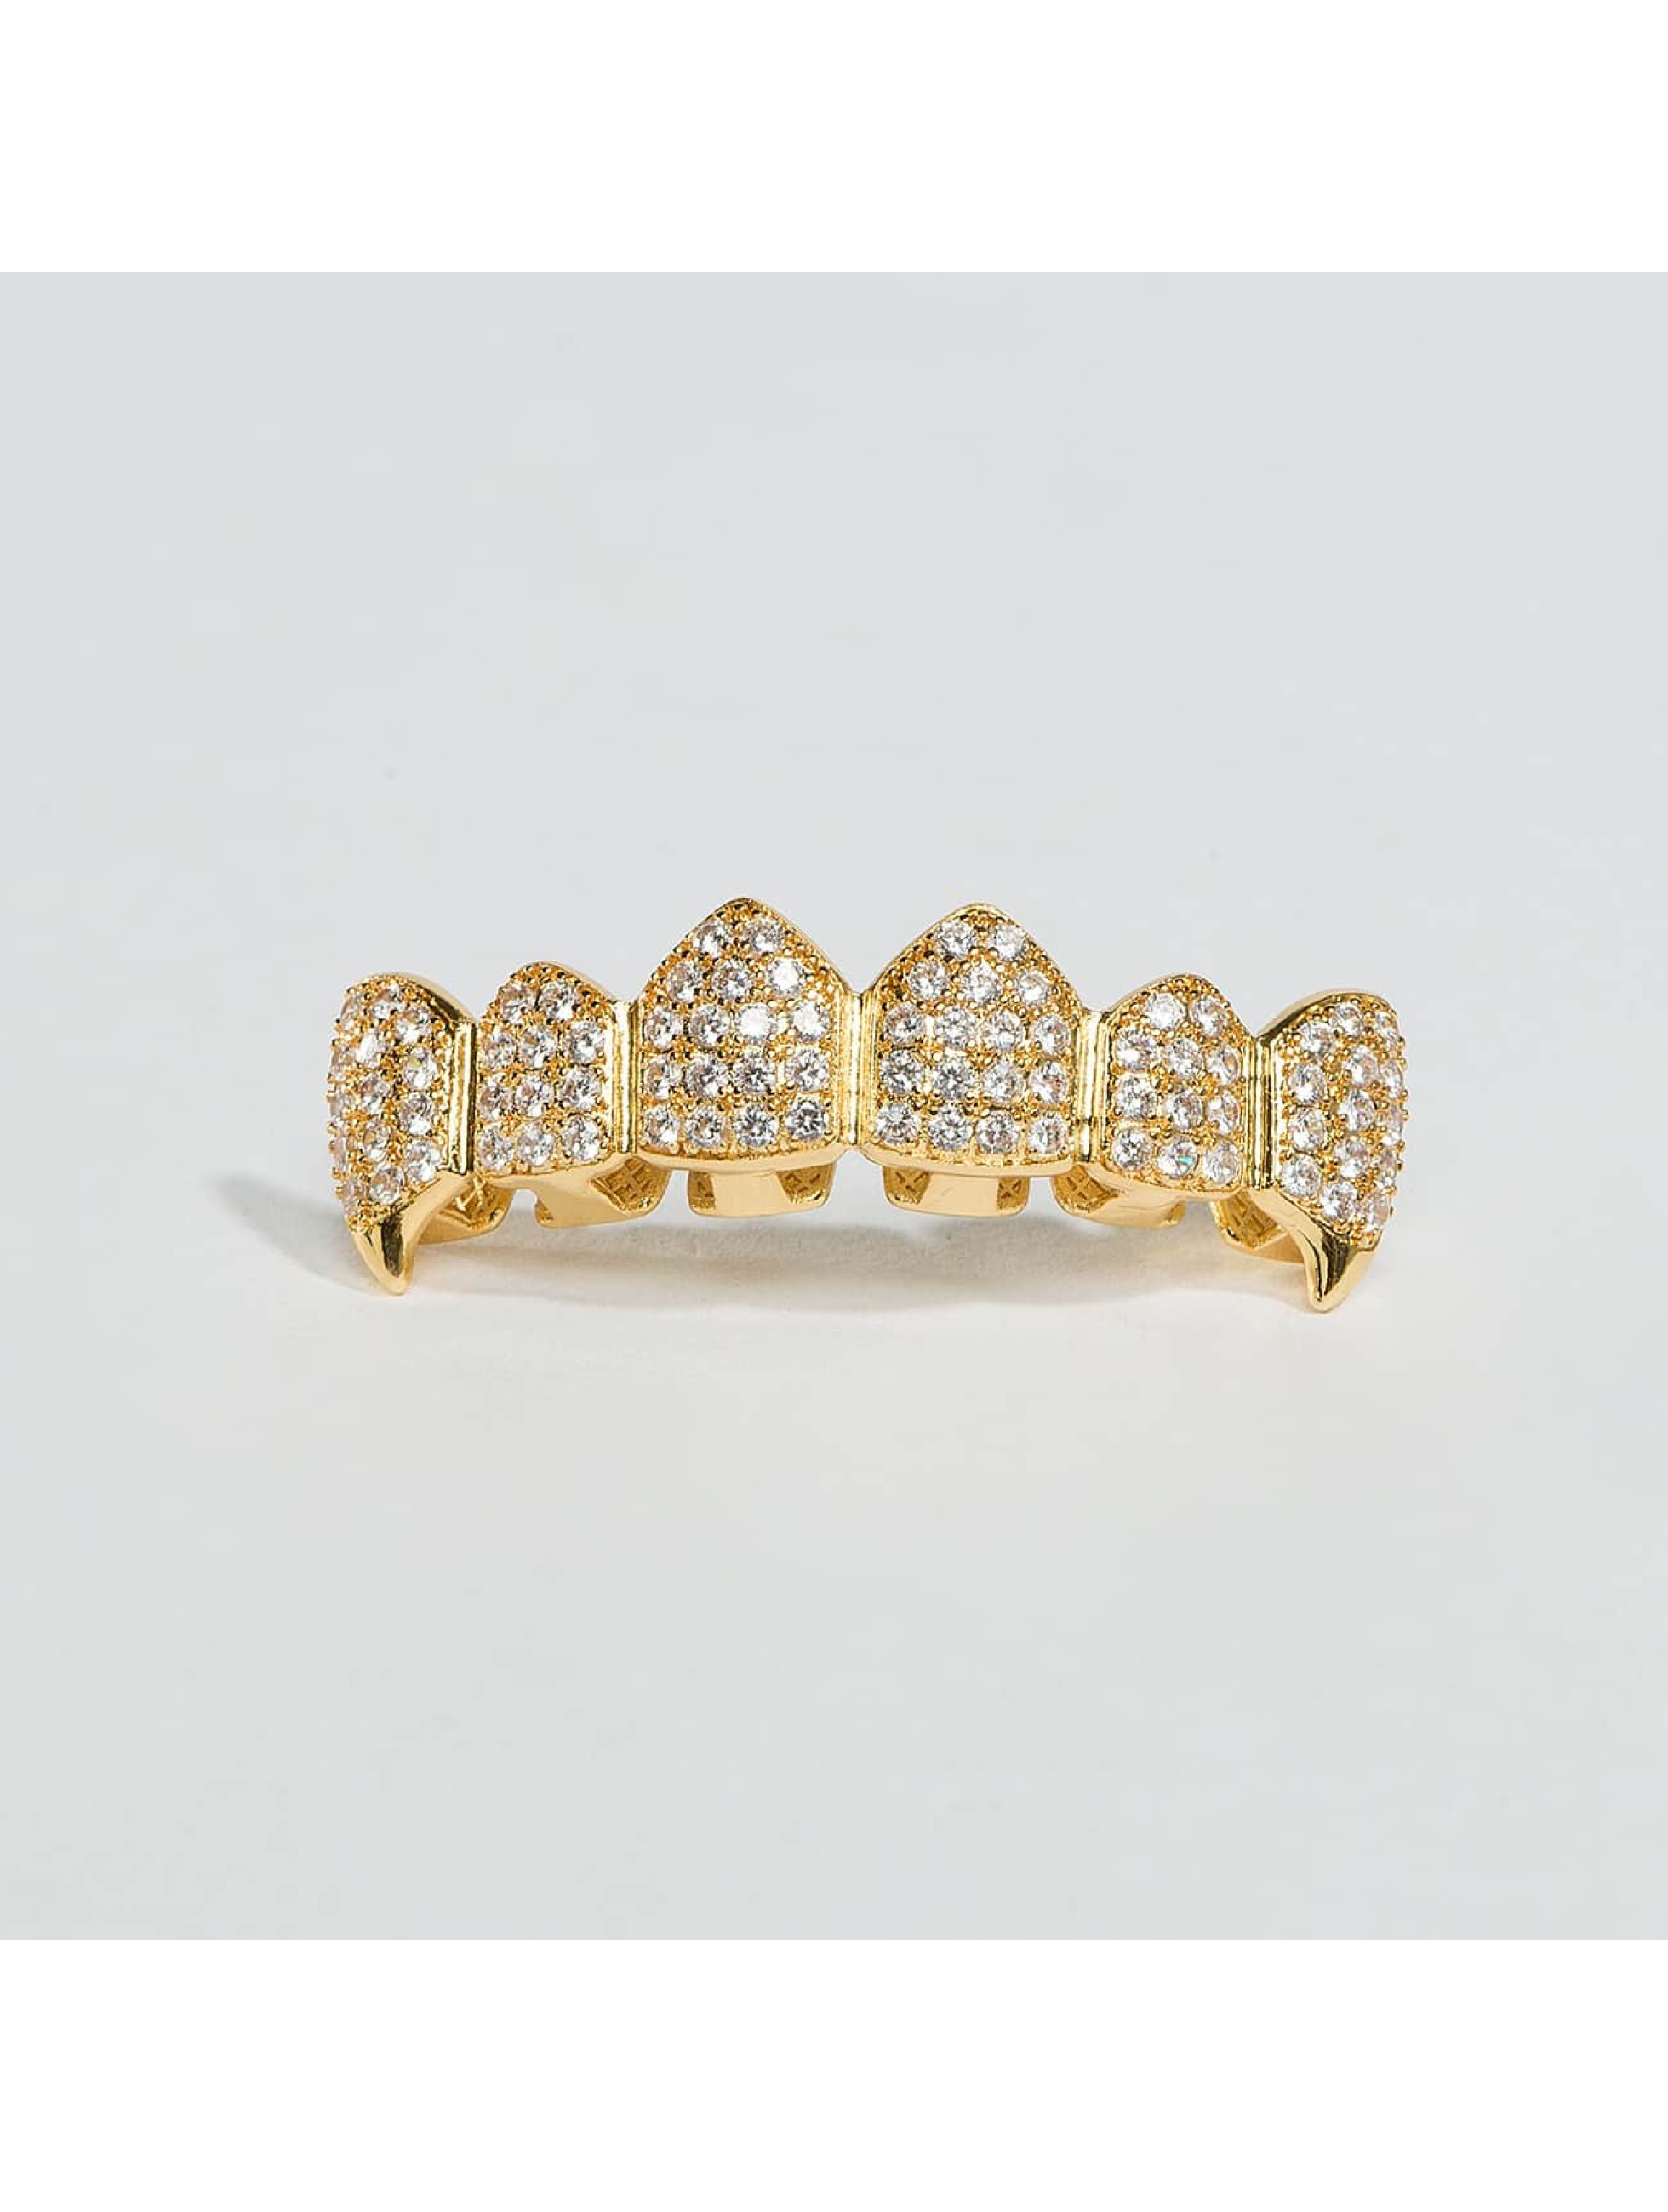 KING ICE Pozostałe Gold_Plated CZ Dracula Teeth Top zloty